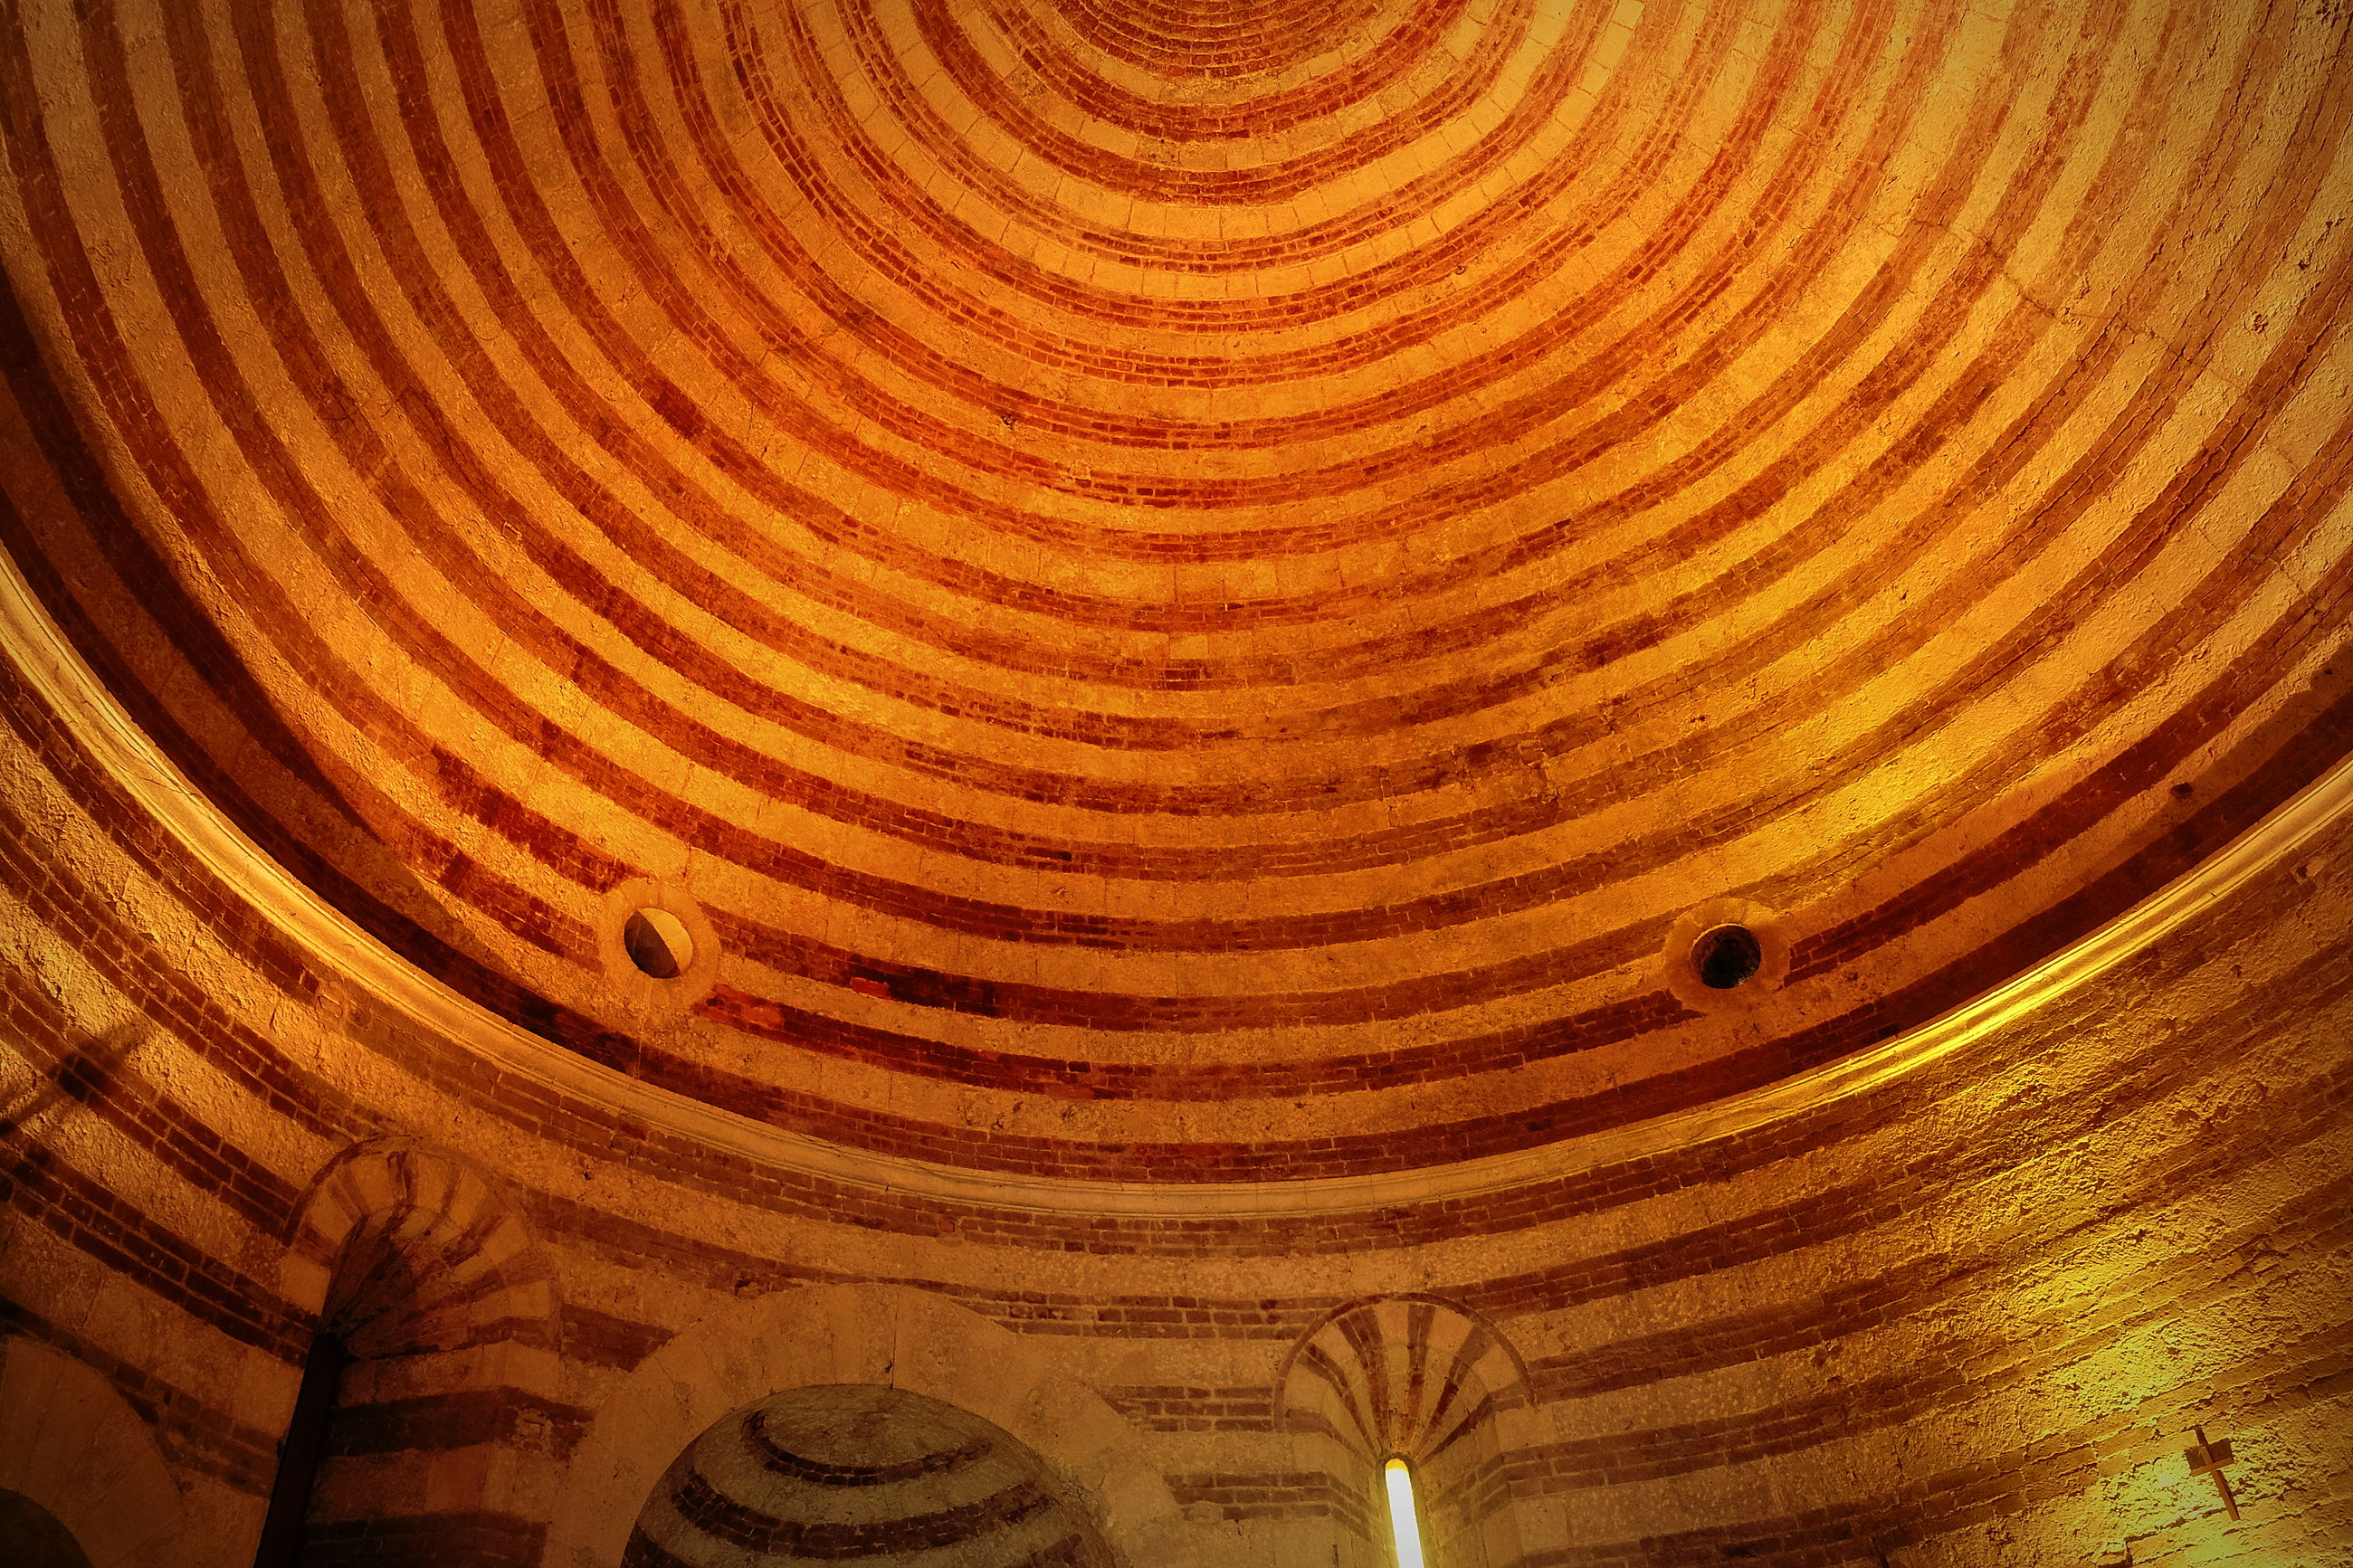 pattern, no people, indoors, architecture, full frame, backgrounds, built structure, history, low angle view, ceiling, the past, textured, wood - material, day, wood, ancient, shape, building, design, carving